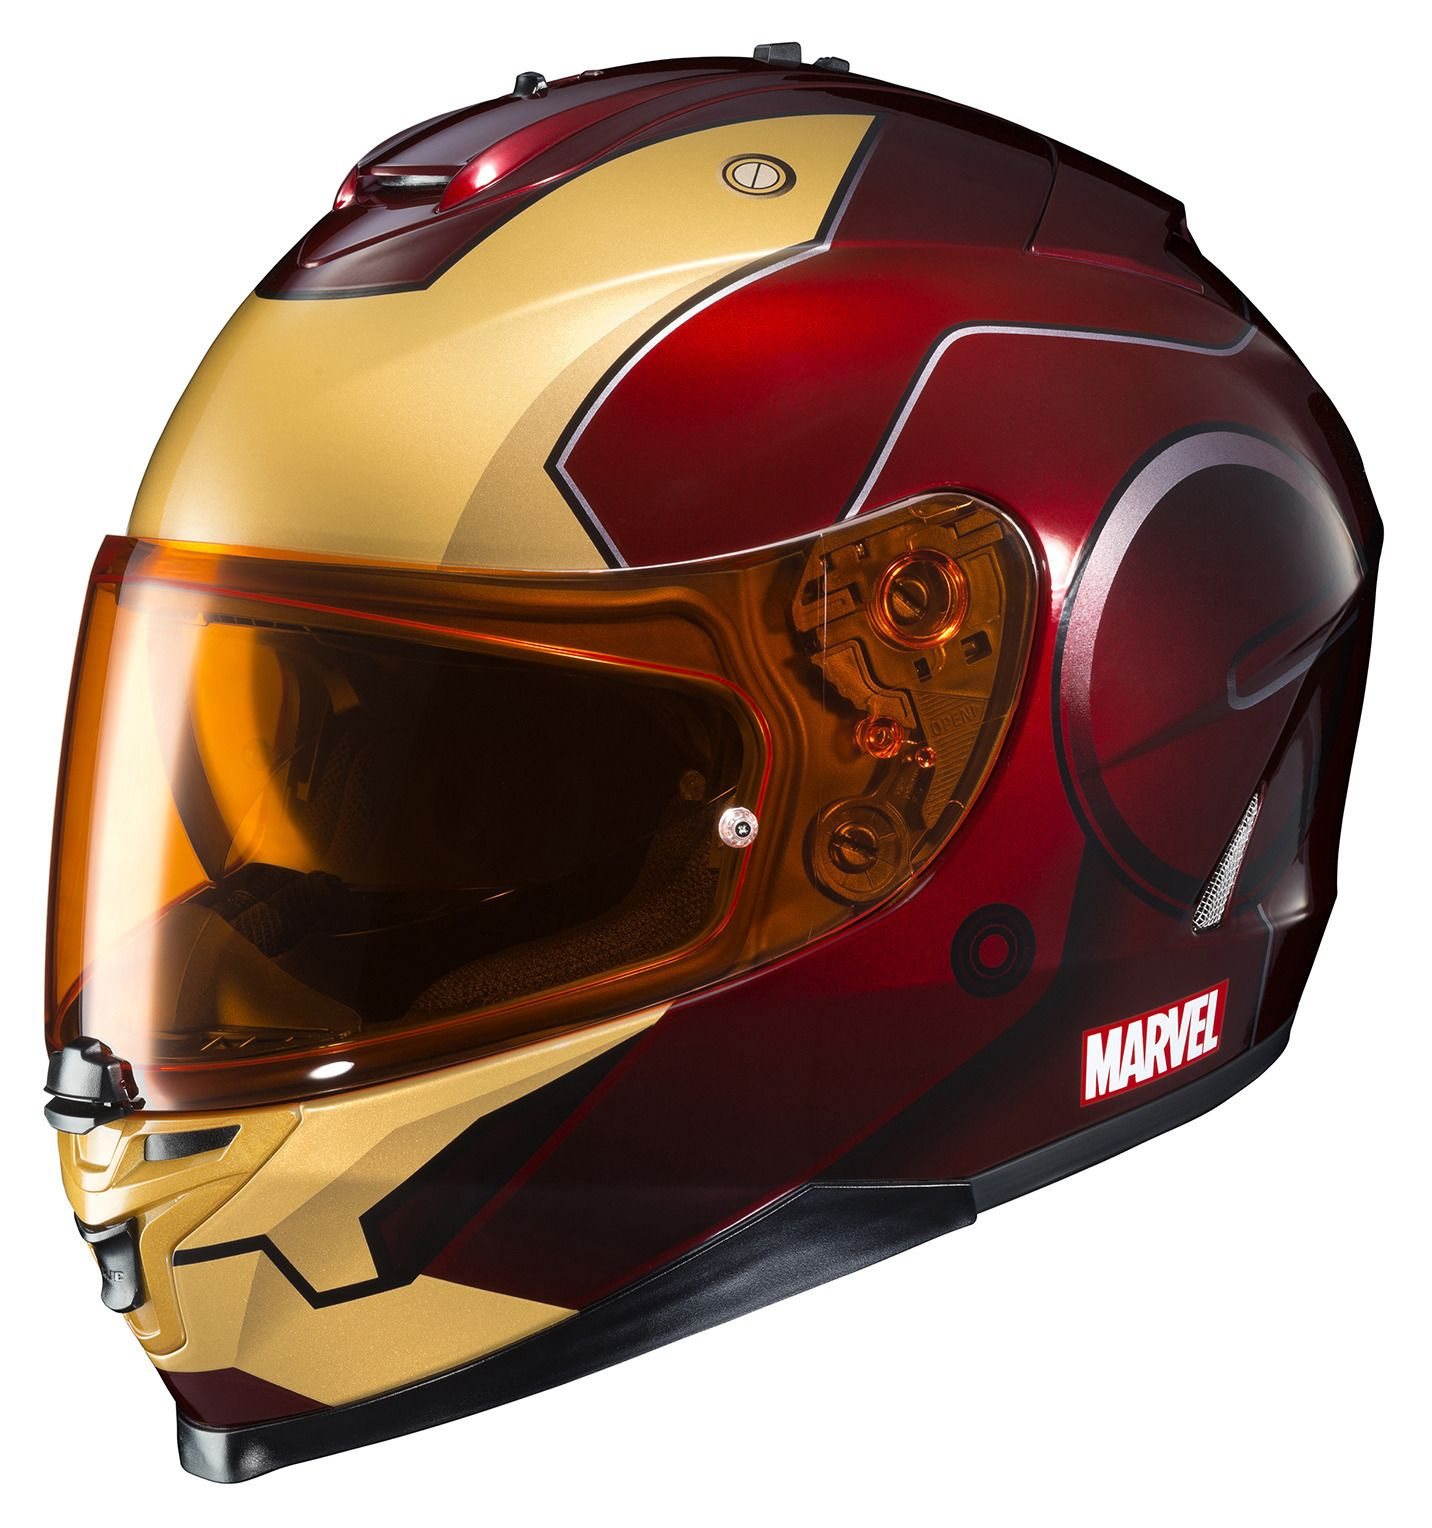 Riding a motorcycle is the full of risk, but the rewards are unending and the best way to protect your most valuable asset (no it's not your bike) is to put on a properly fitting motorcycle helmet every time .